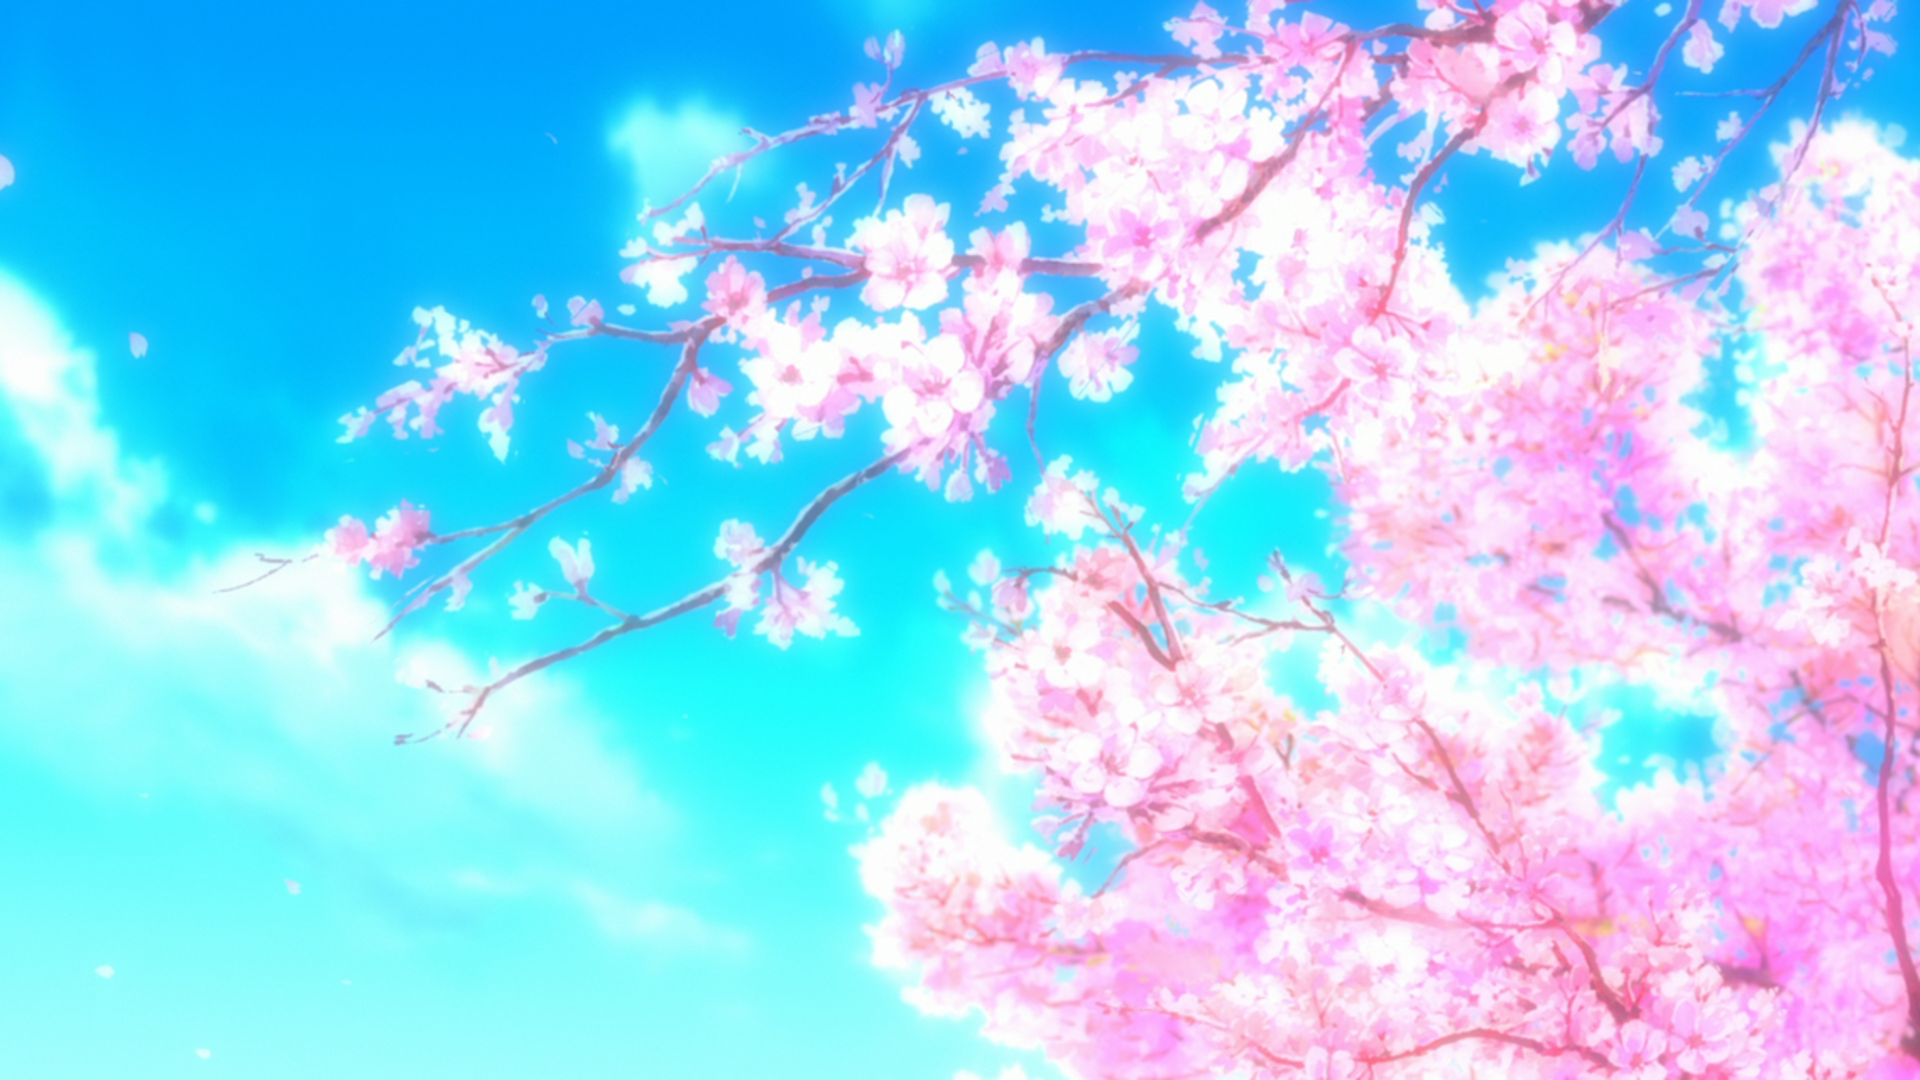 cherry blossom wallpaper for iphone 6 plus